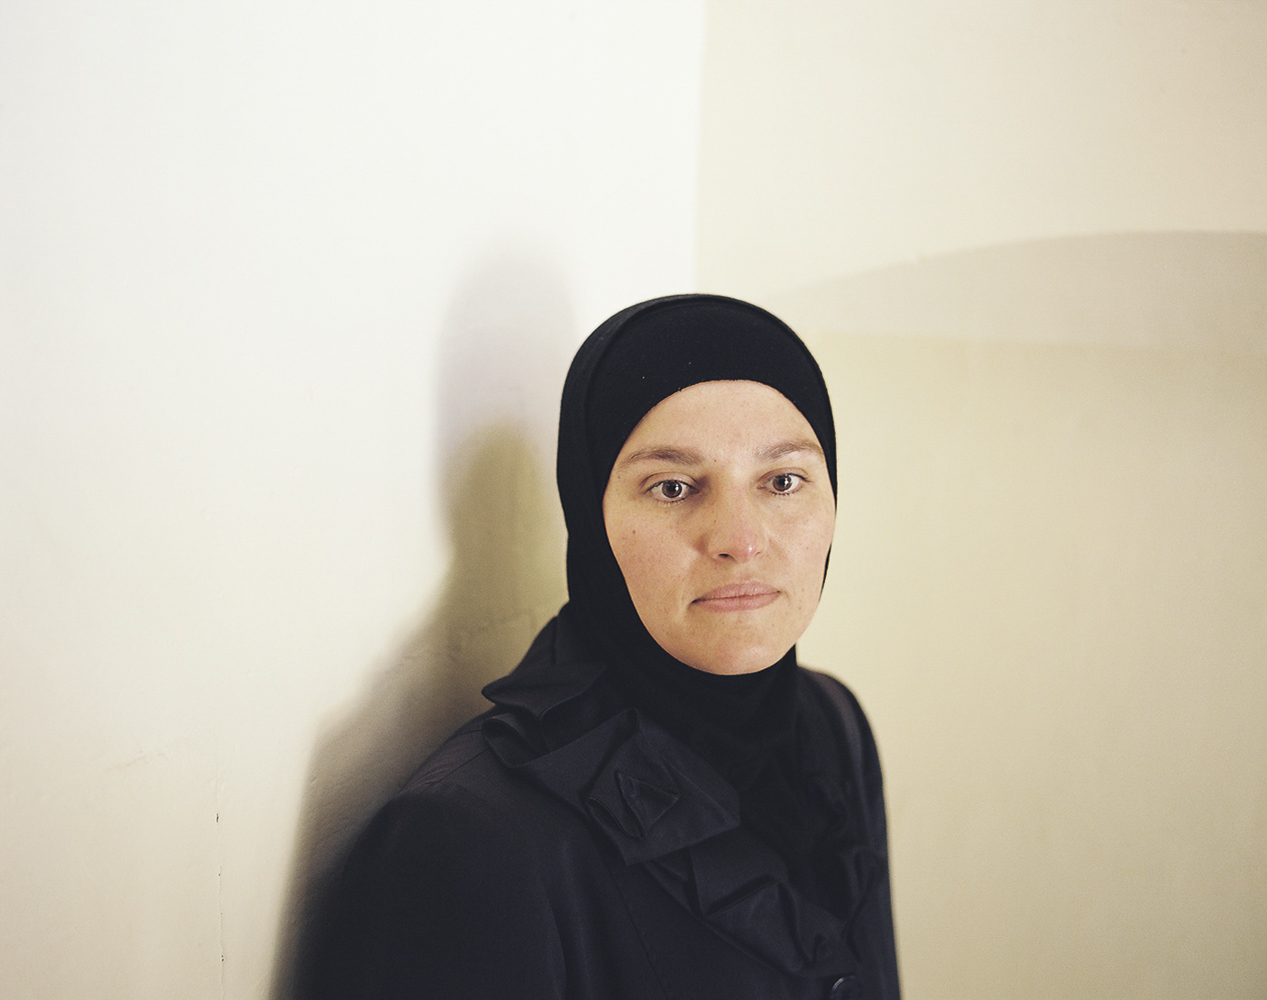 "Ibtesam (40), an english teacher from Aleppo, fled to Kilis seeking medical help after a bomb dropped on her home  killed her 11-year-old daughter Iman and left her other daughter Aya (14) injured with a broken skull and consequently amnesia. ""I lived a normal and simple life in Syria"" says Ibtesam, who was pro-revolution because she wanted a better life for her children. Now, she visits the center for displaced Syrian women in Kilis daily to learn hairdressing, in hopes of finding work to support her family. Ibtesam's name in Arabic means ""smile""."